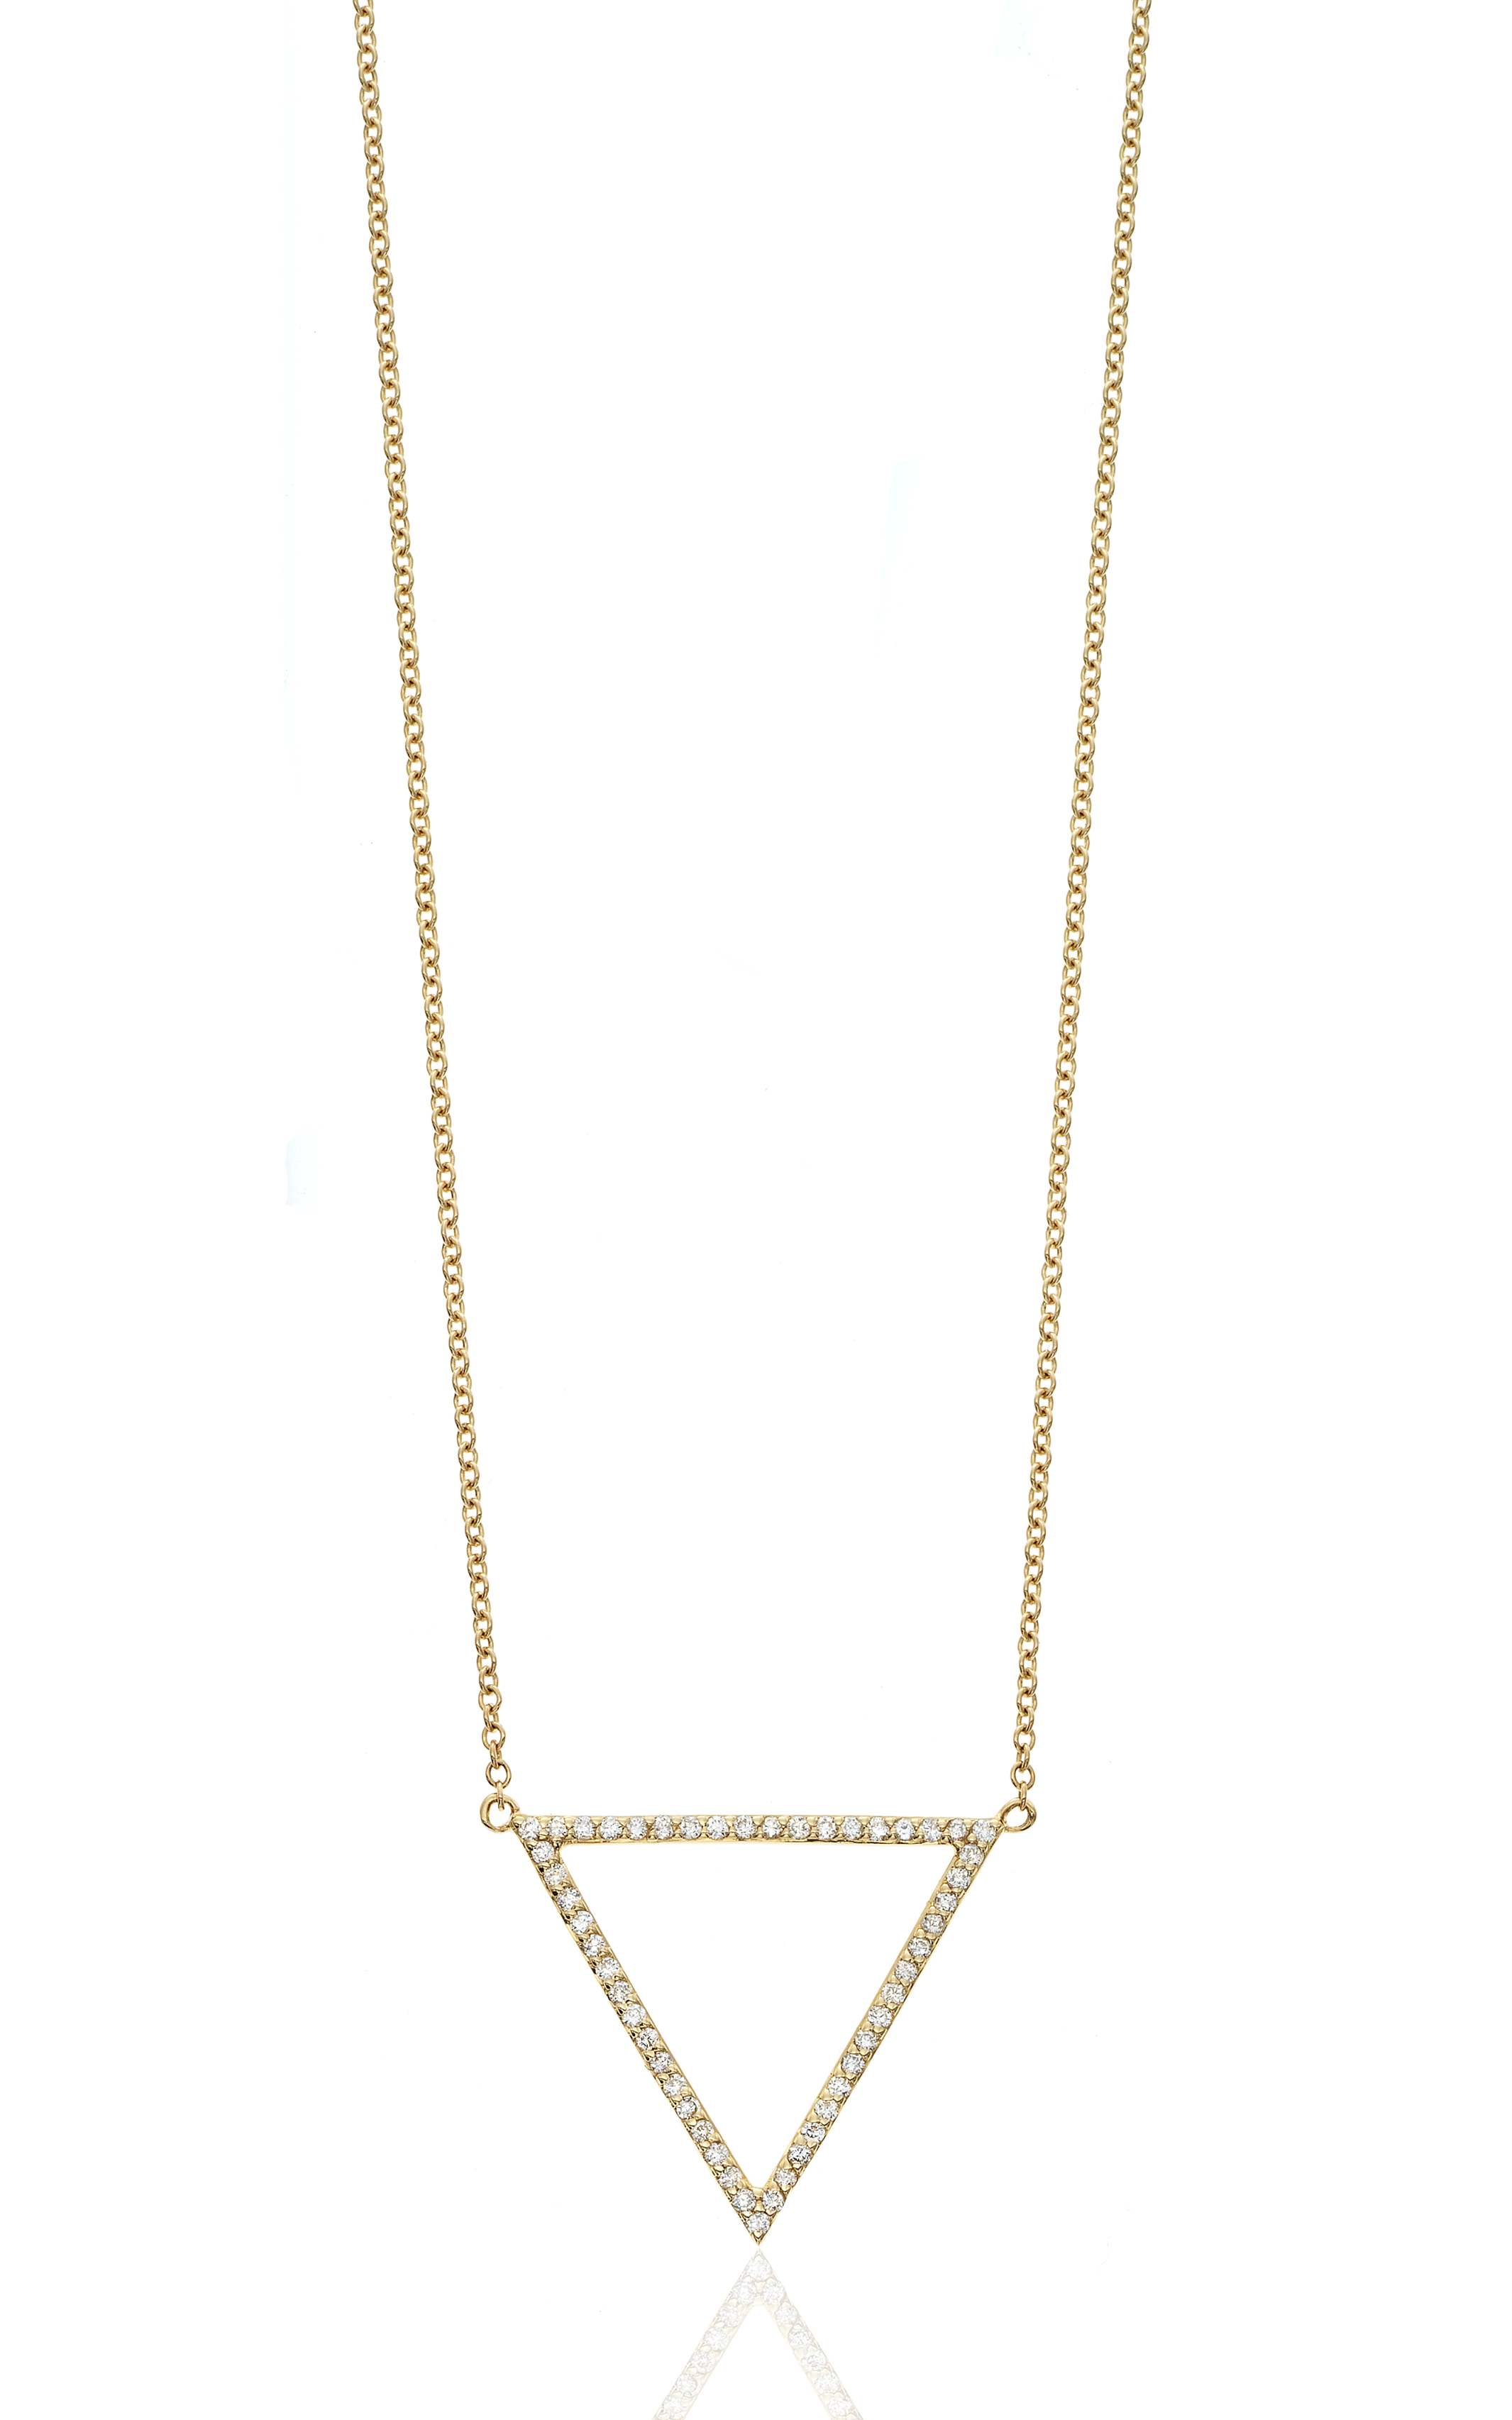 Beny Sofer Necklaces SP15-46YB product image